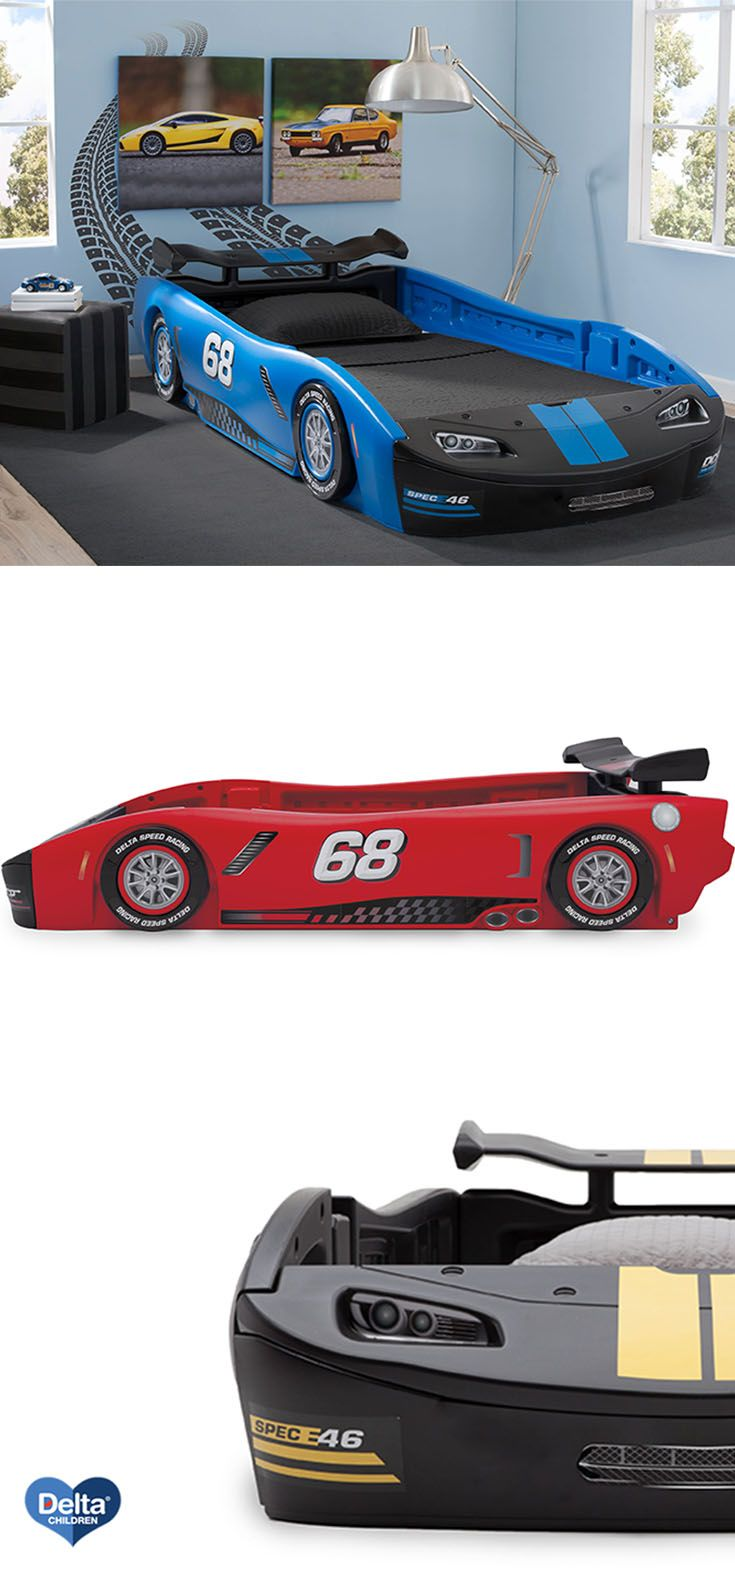 sweet dreams are just around the corner with the turbo race car twin bed from delta